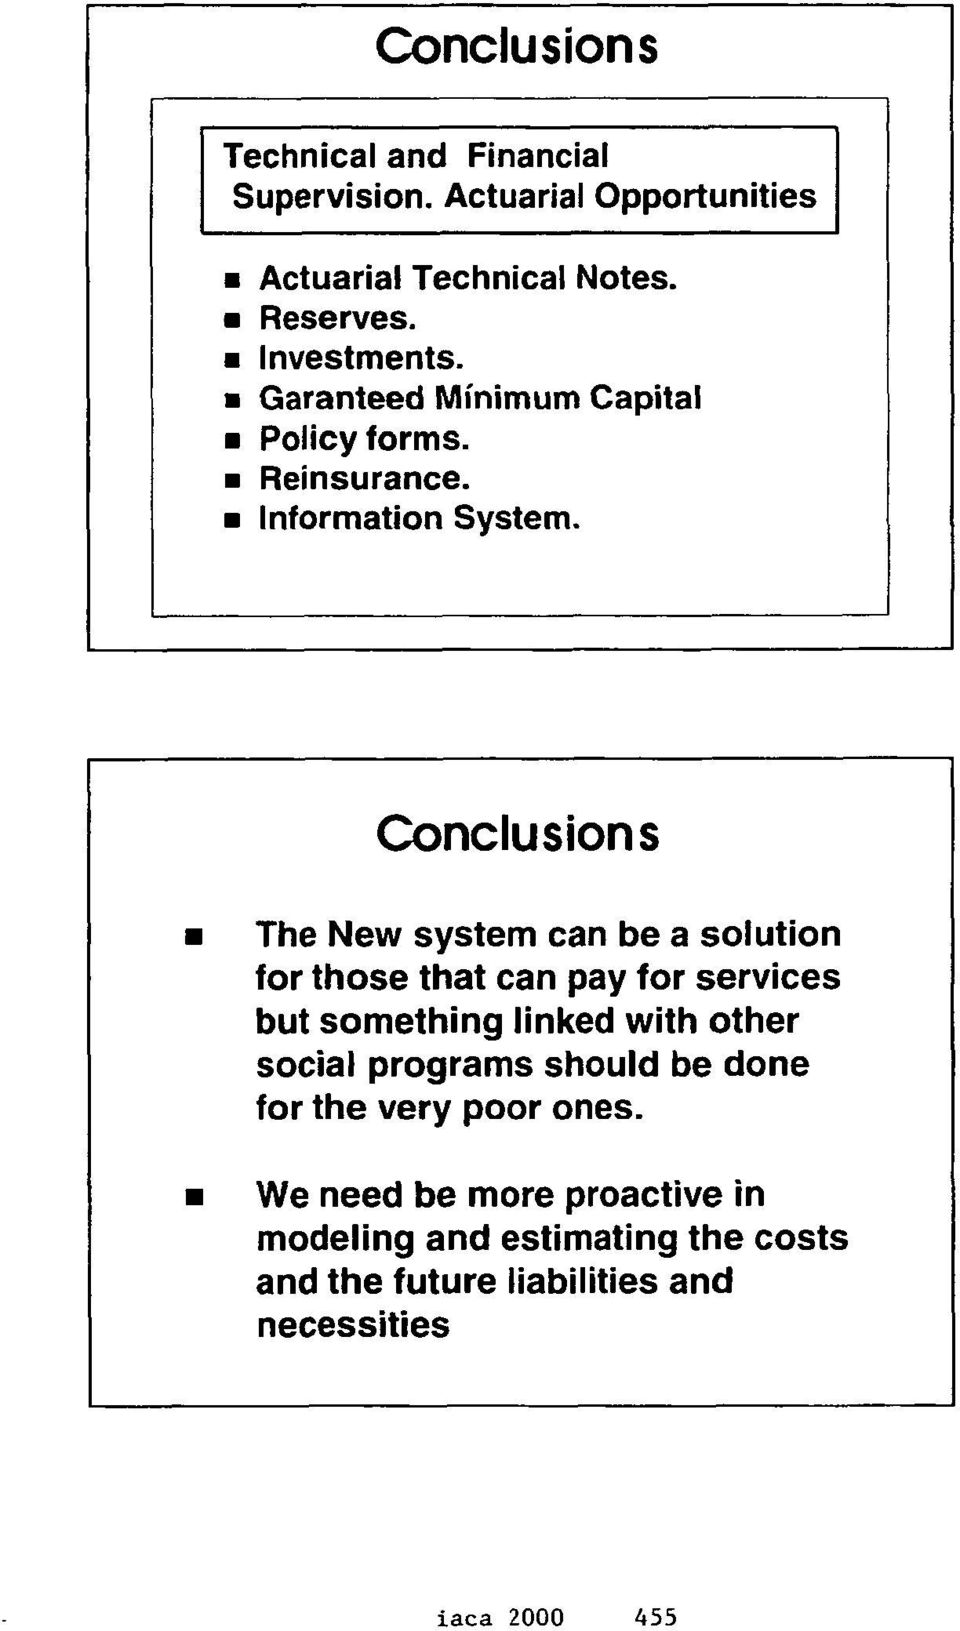 The New system can be a solution for those that can pay for services but something linked with other social programs